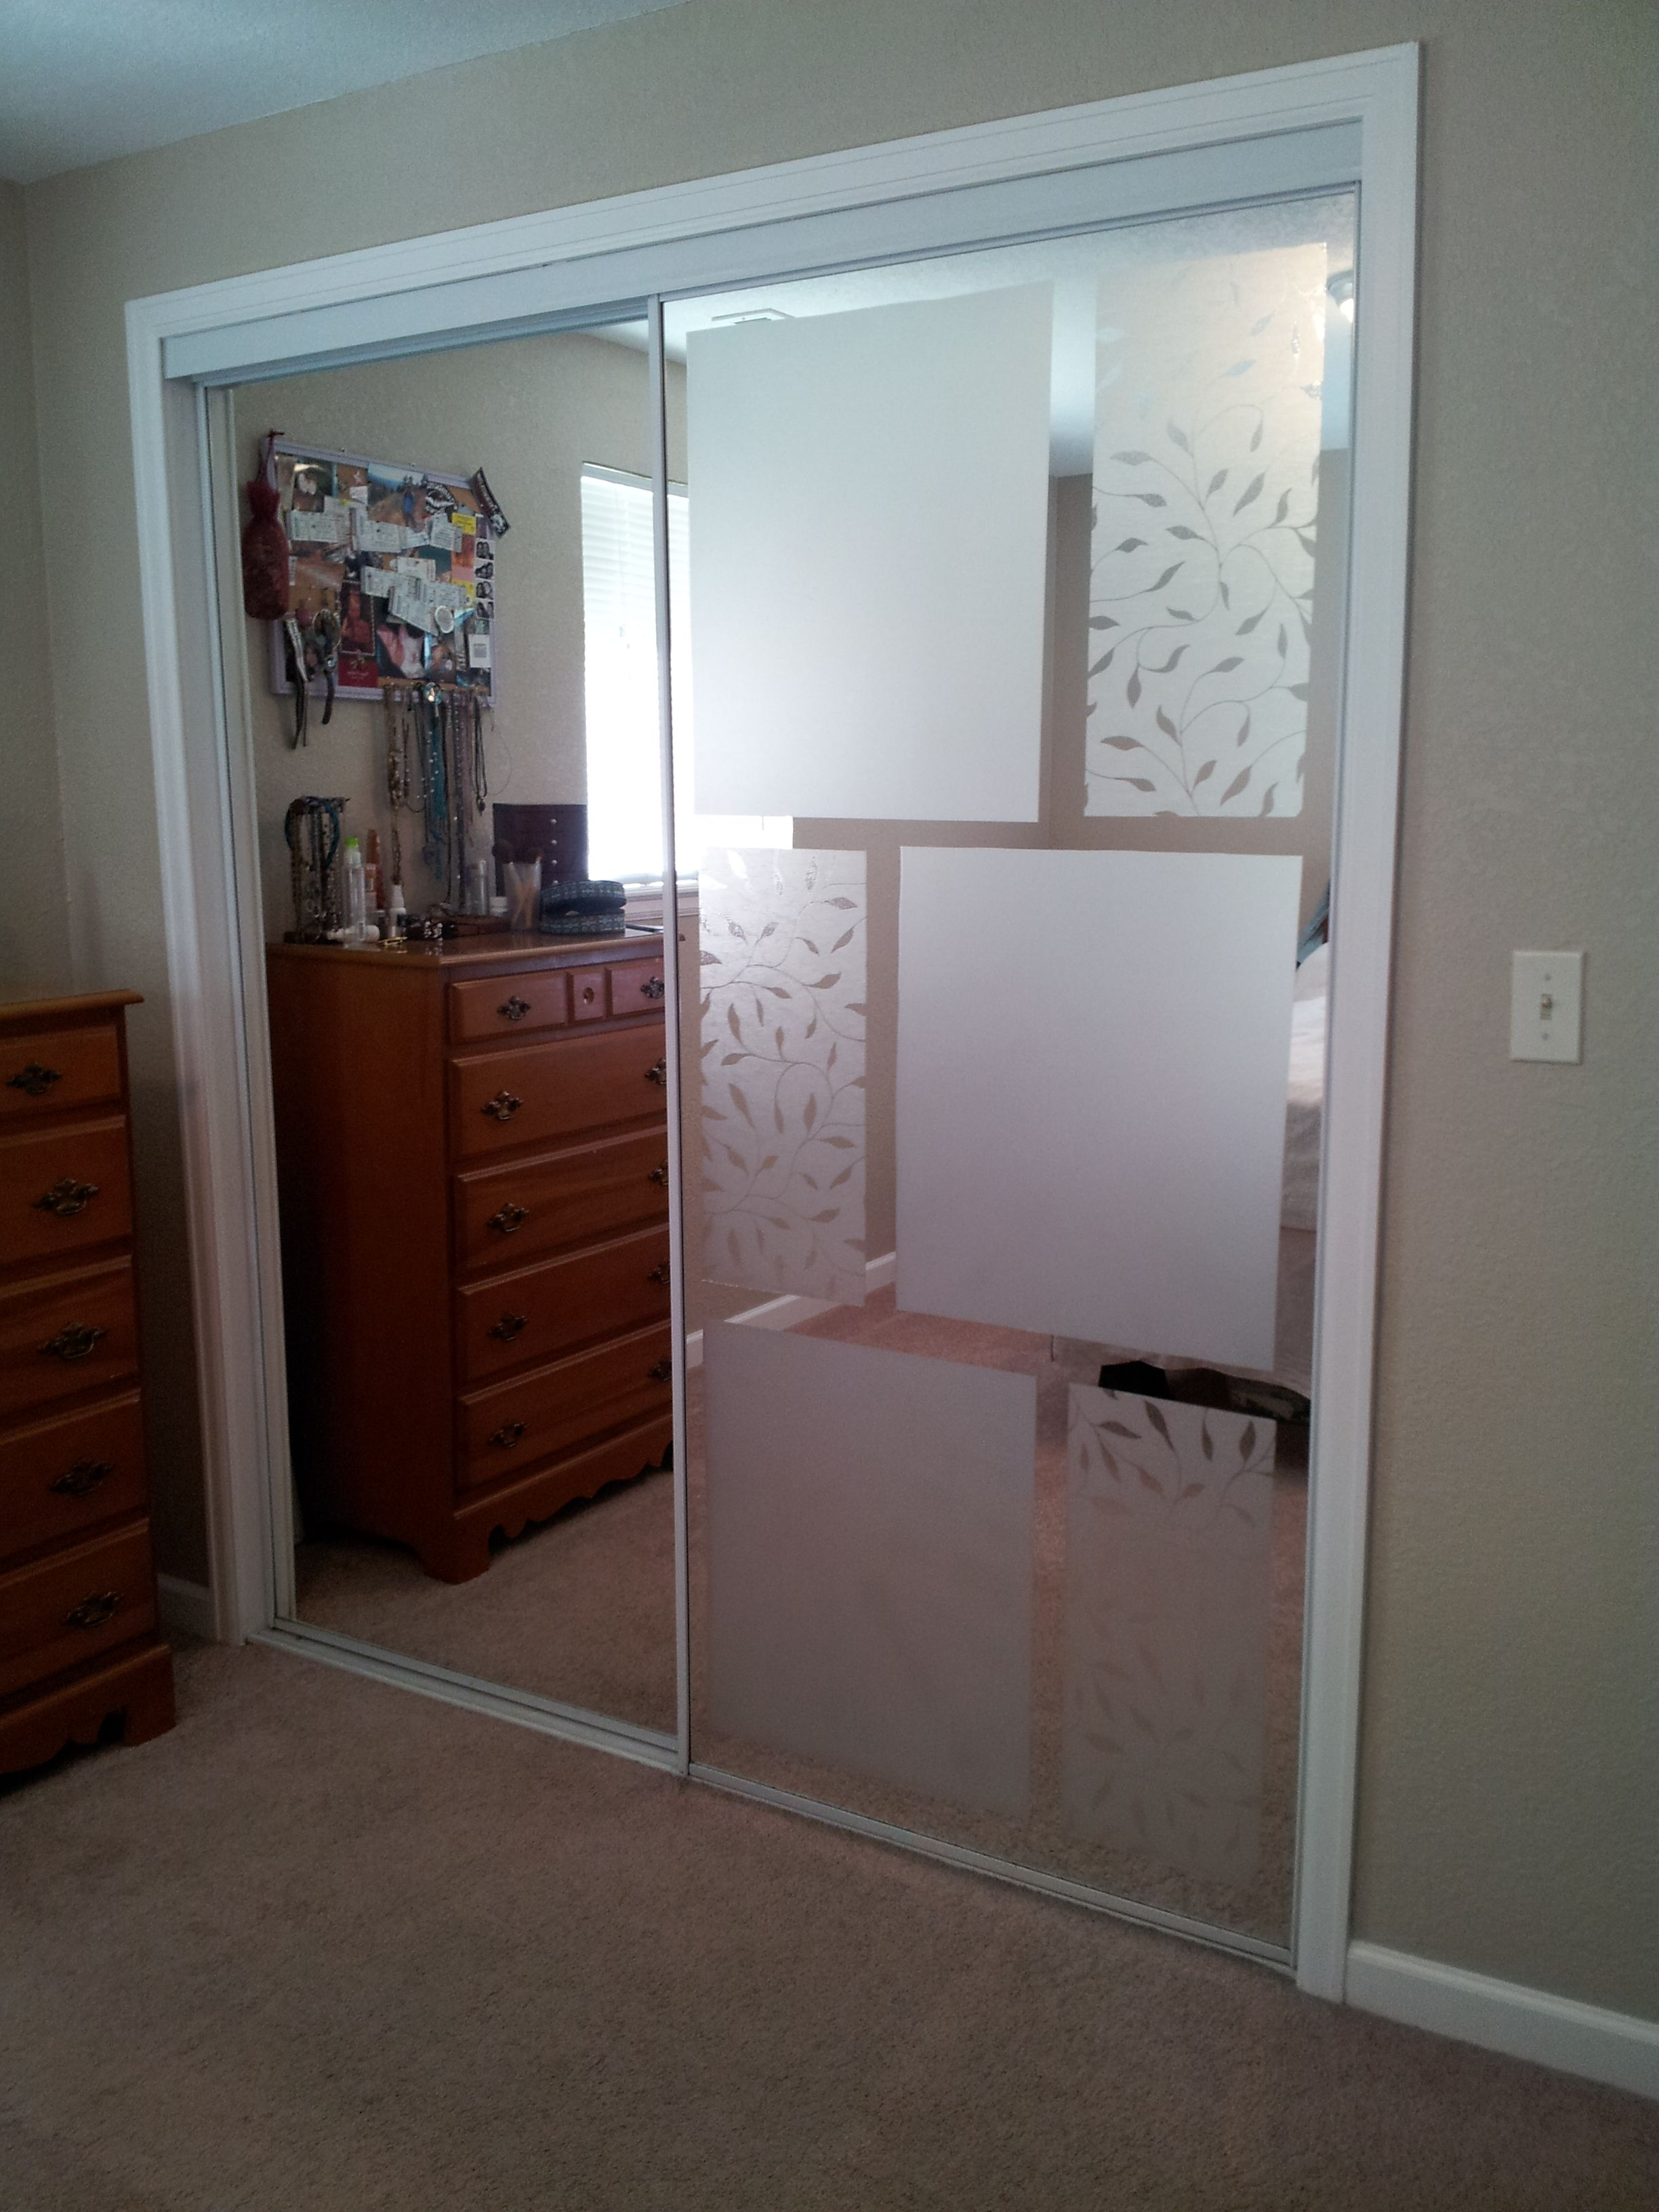 Used Adhesive Free Window Frosting To Cover Up Mirrored